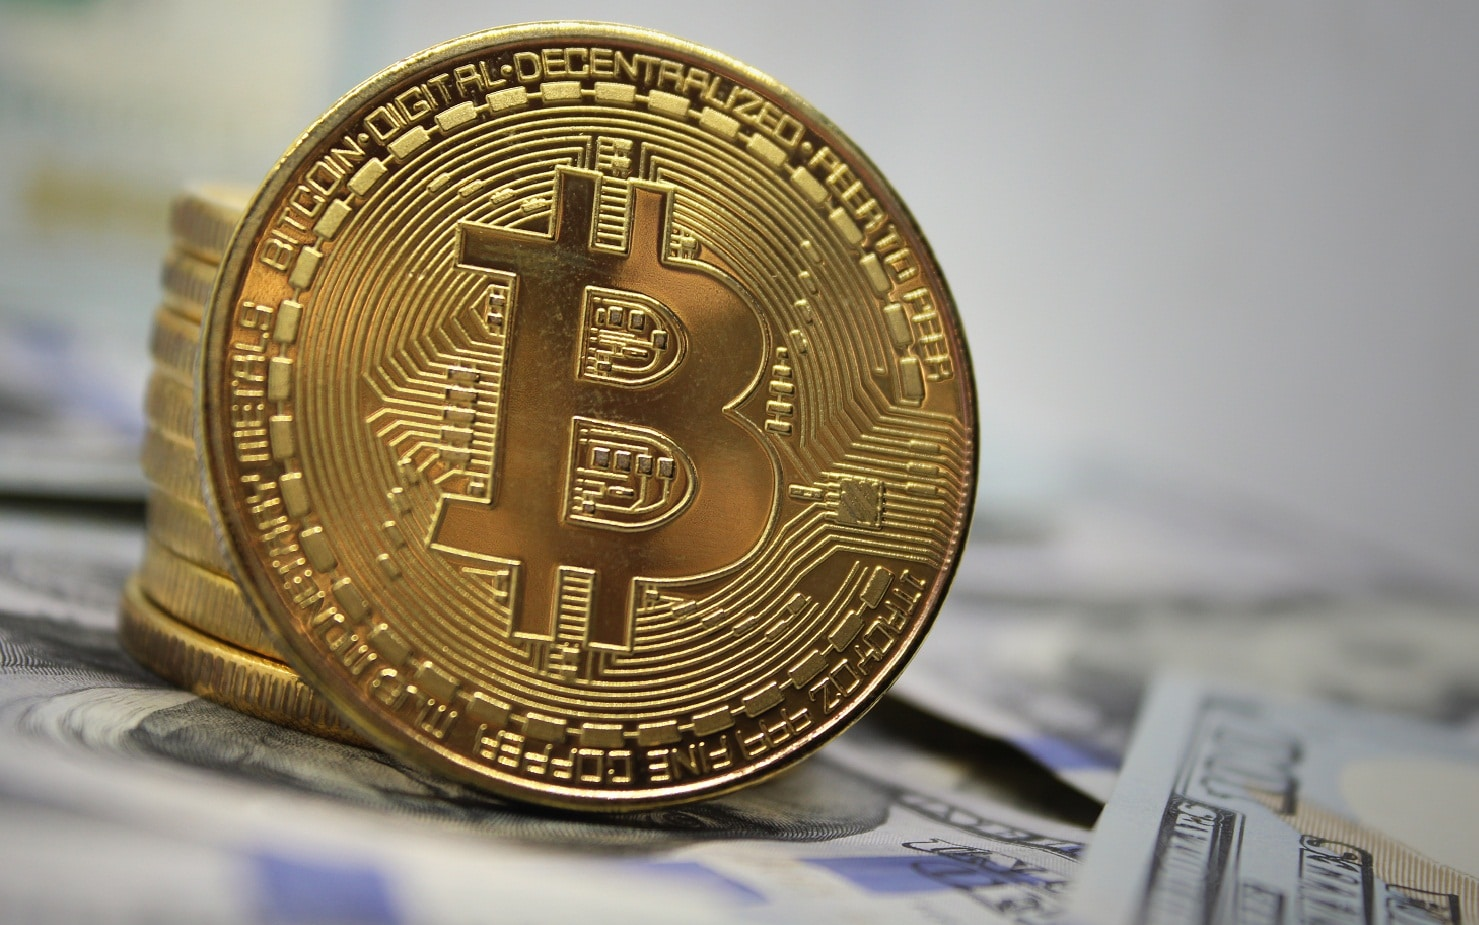 Bitcoin price fluctuates between resistance and support at 7,860 USD